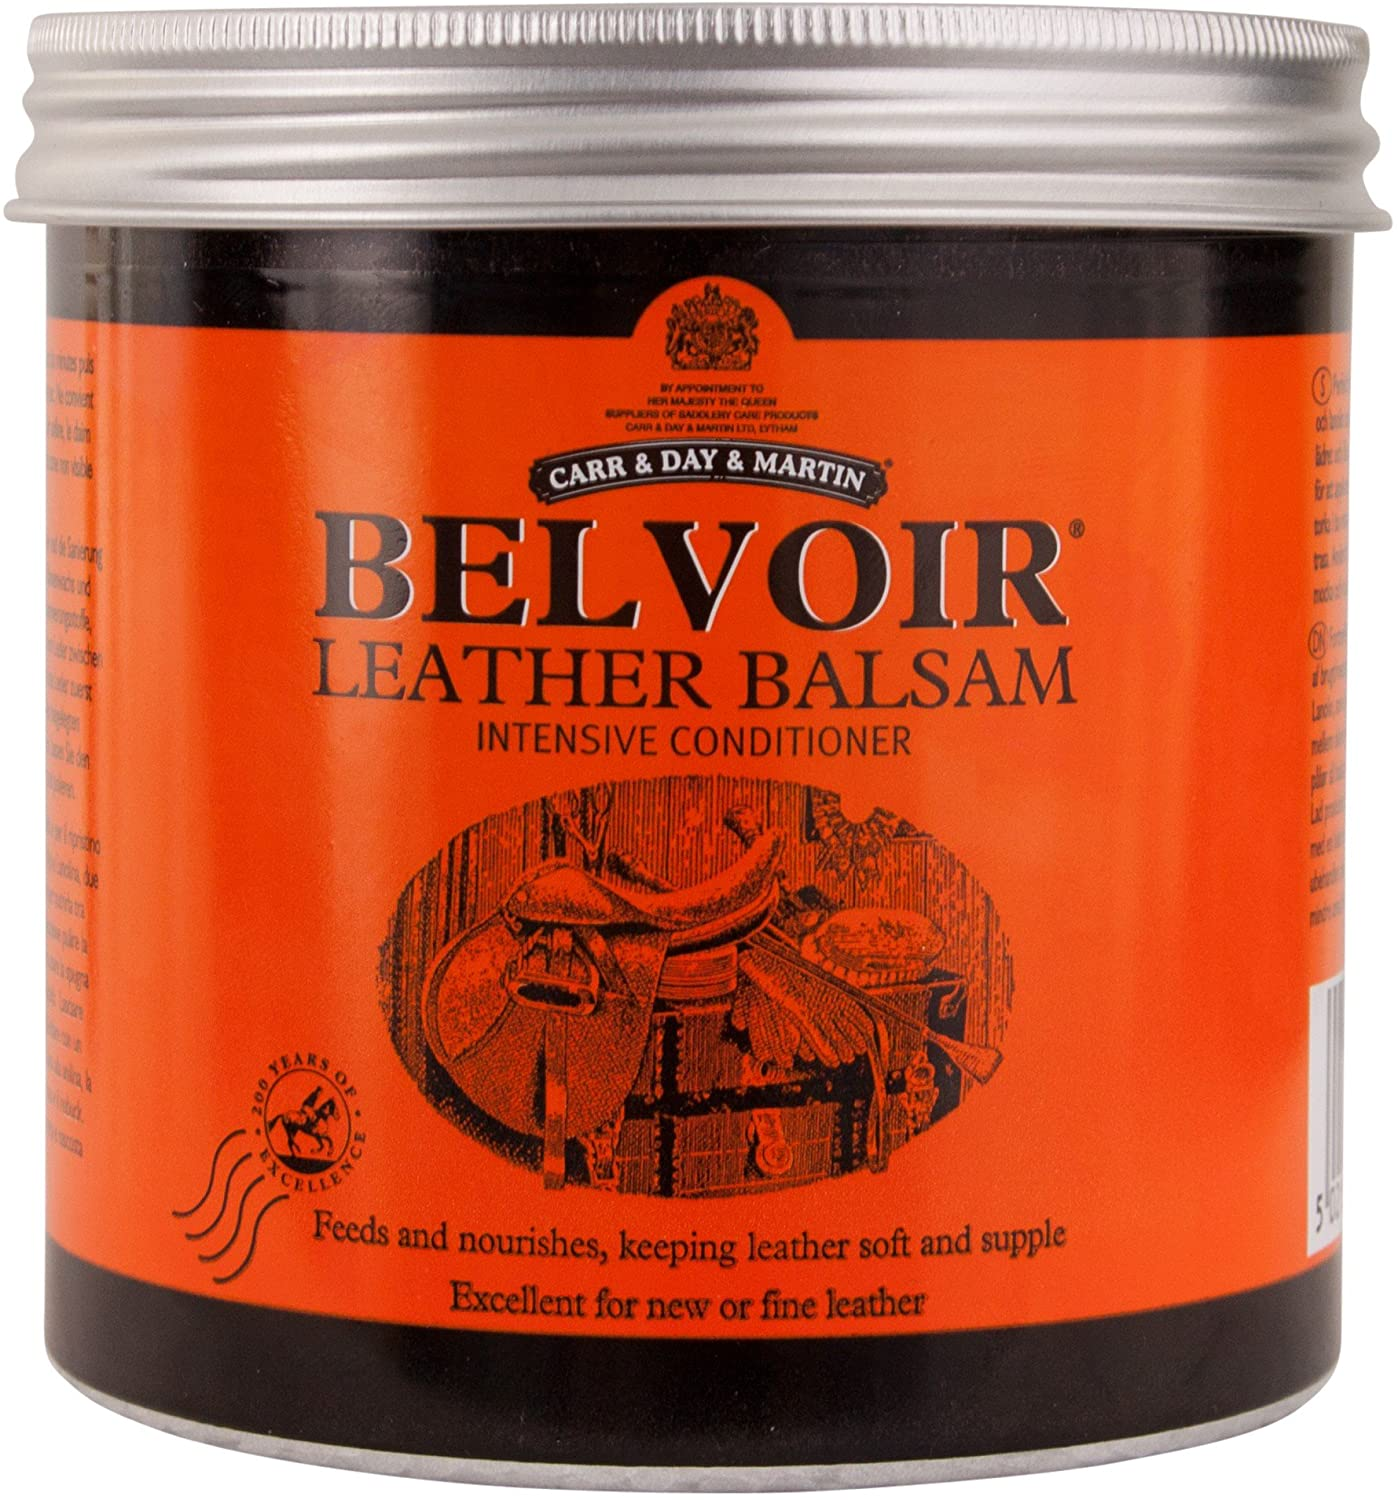 Belvoir Leather Balsam Intensive Conditioner